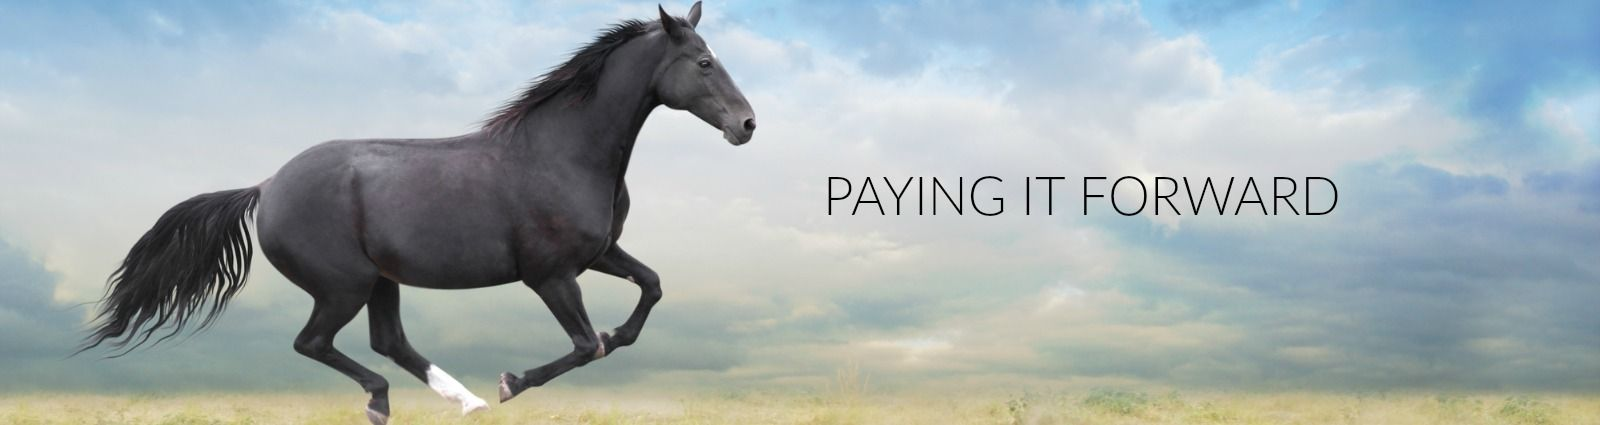 BRL Equine paying it forward